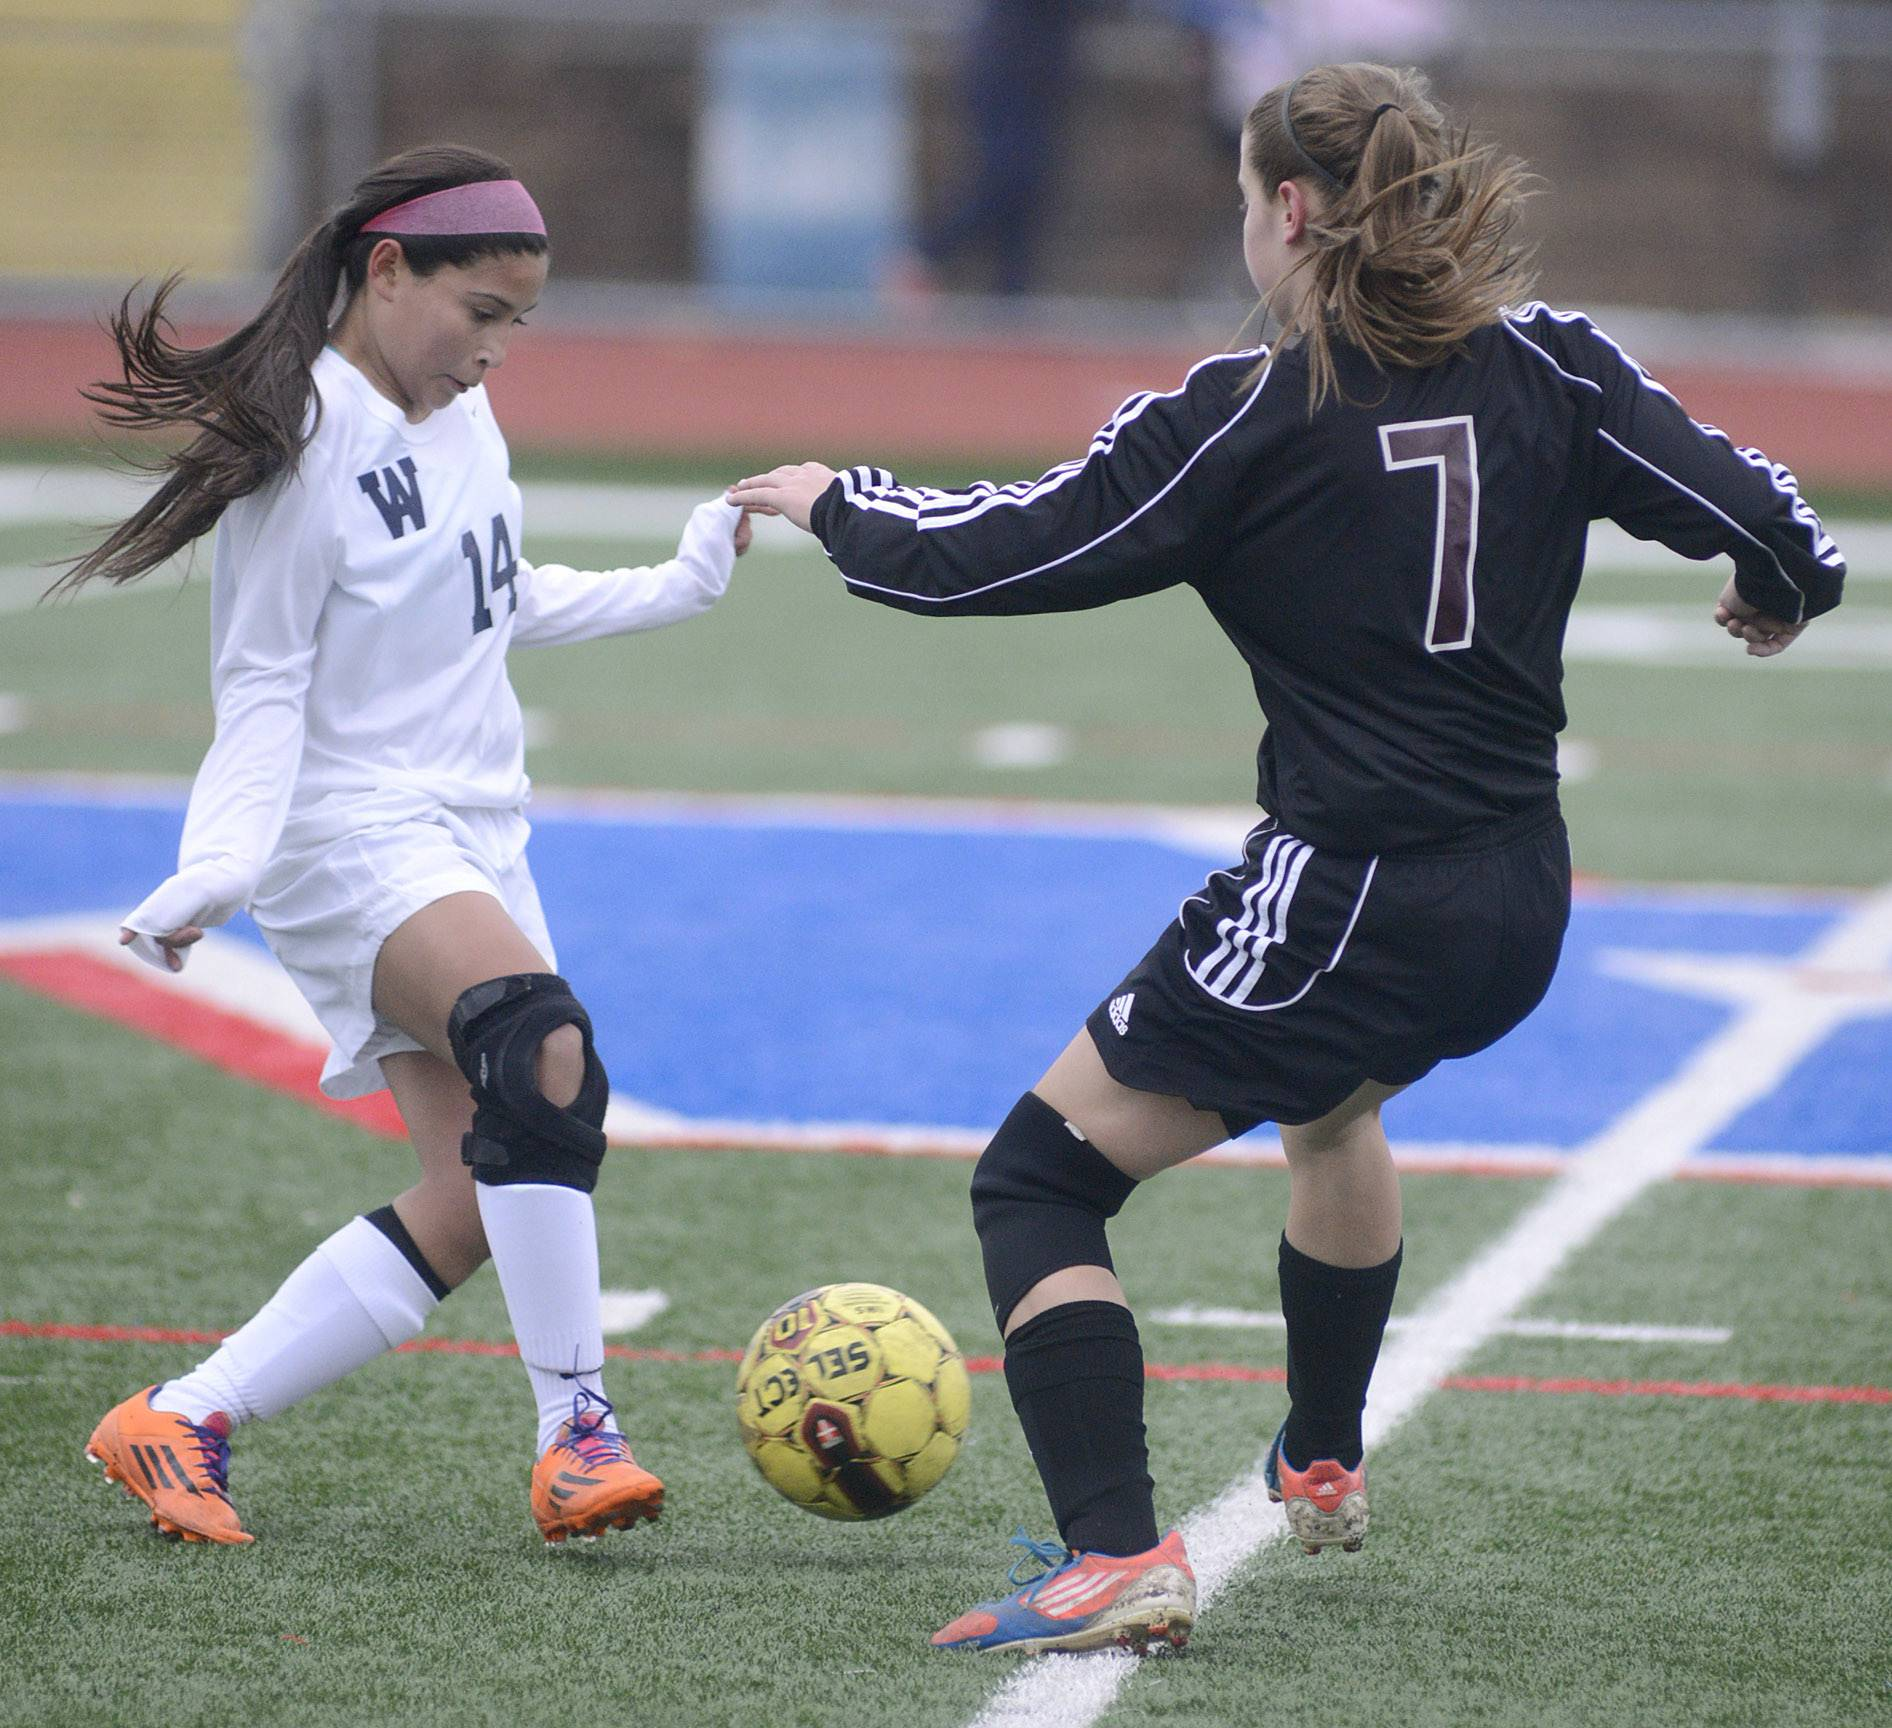 West Aurora's Jocelyn Ferrar, left, and Wheaton Academy's Jamie Netzley fight for the ball in the first half on Wednesday in Aurora.